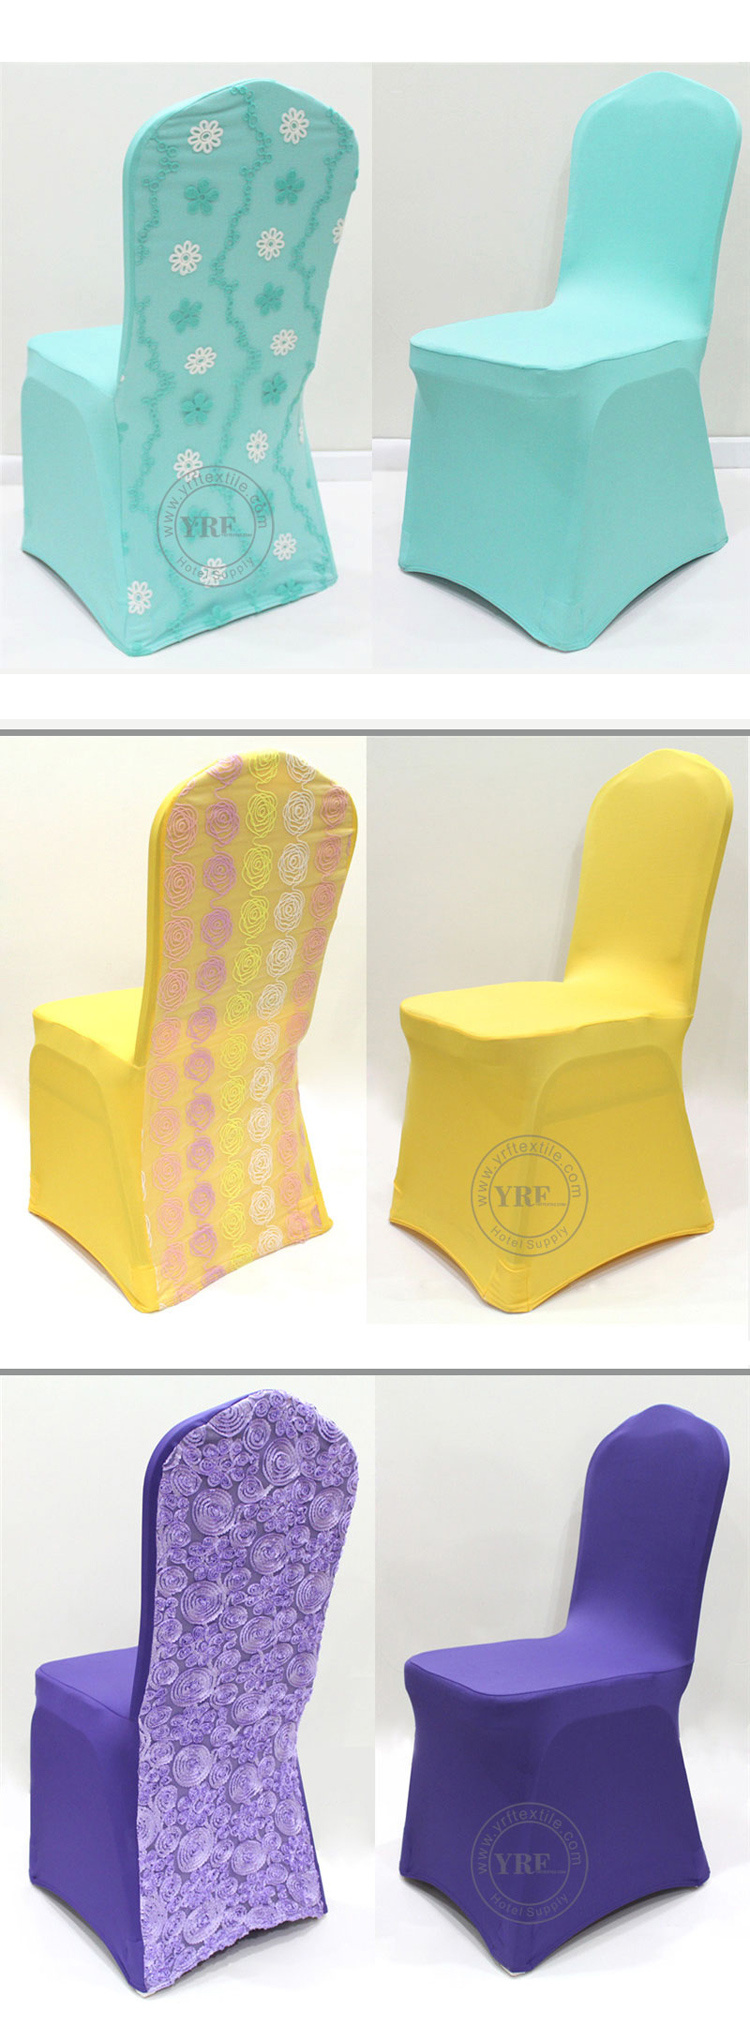 Guangzhou Foshan Cheap Stretch Universal Chair Seat Covers Christmas Dining Room Chair Cover For Yrf China Chair Covers And Furniture Cover Price Made In China Com